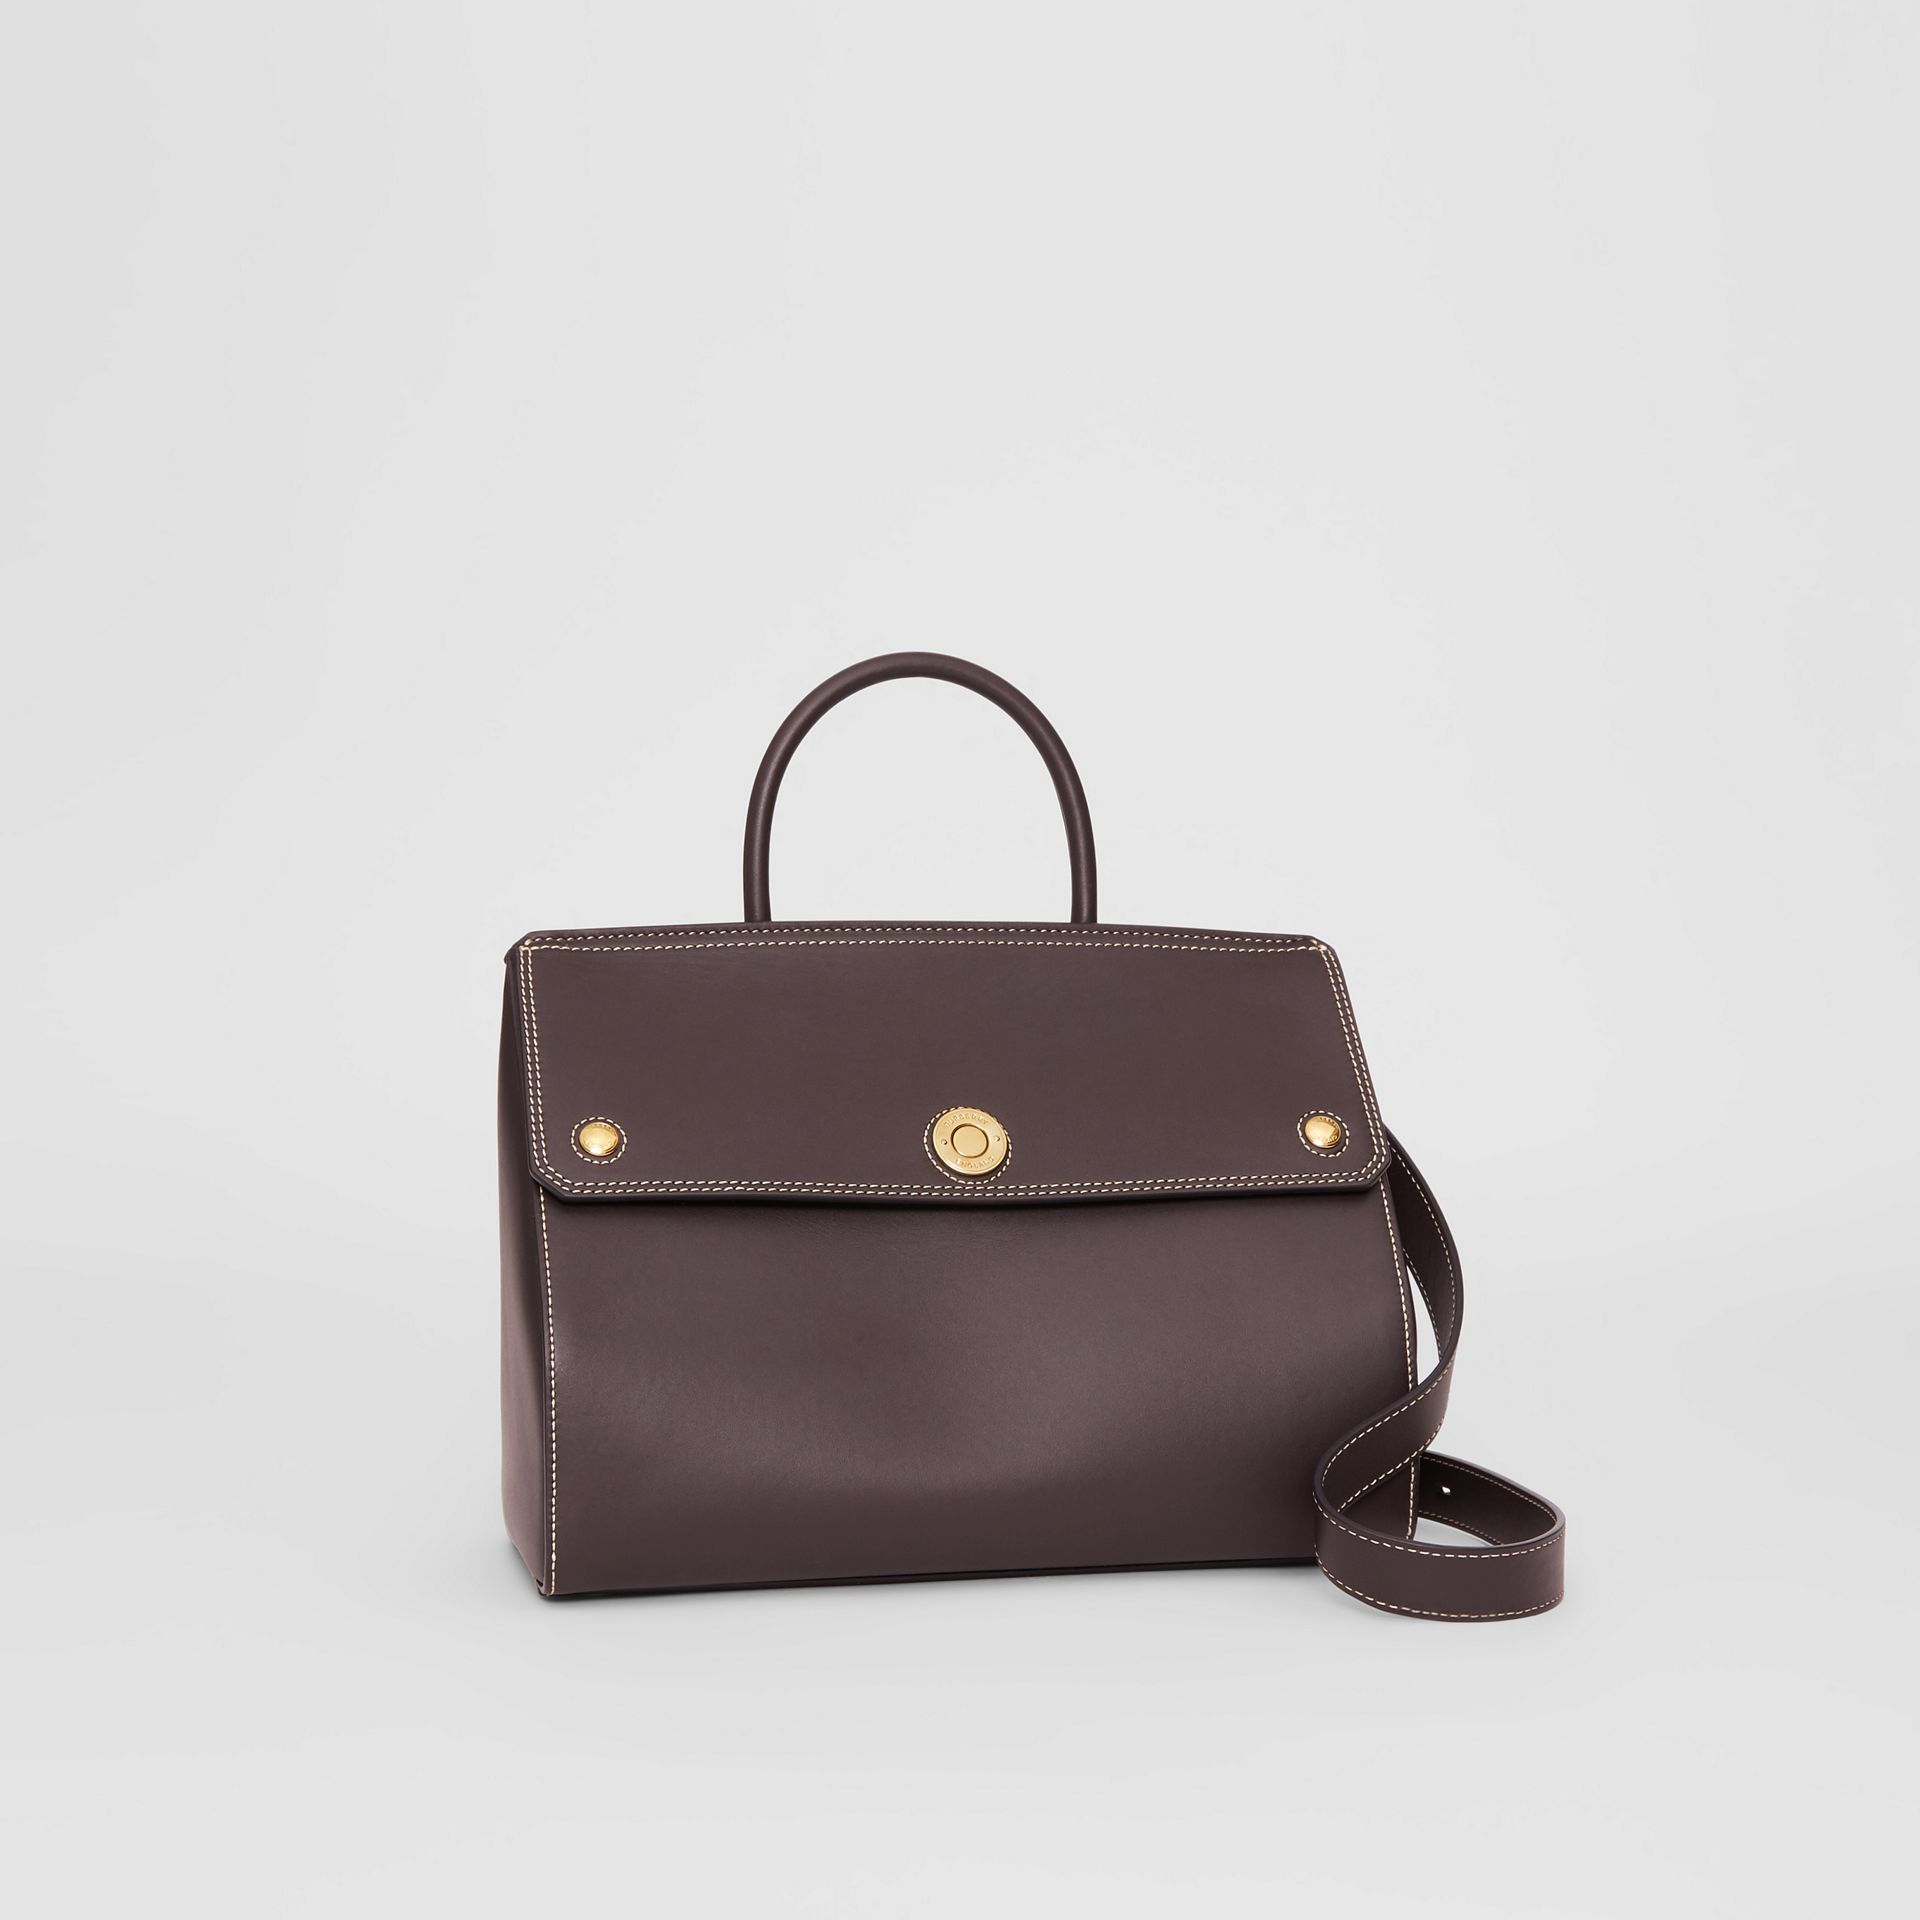 Small Leather Elizabeth Bag in Coffee - Women | Burberry Australia - gallery image 6